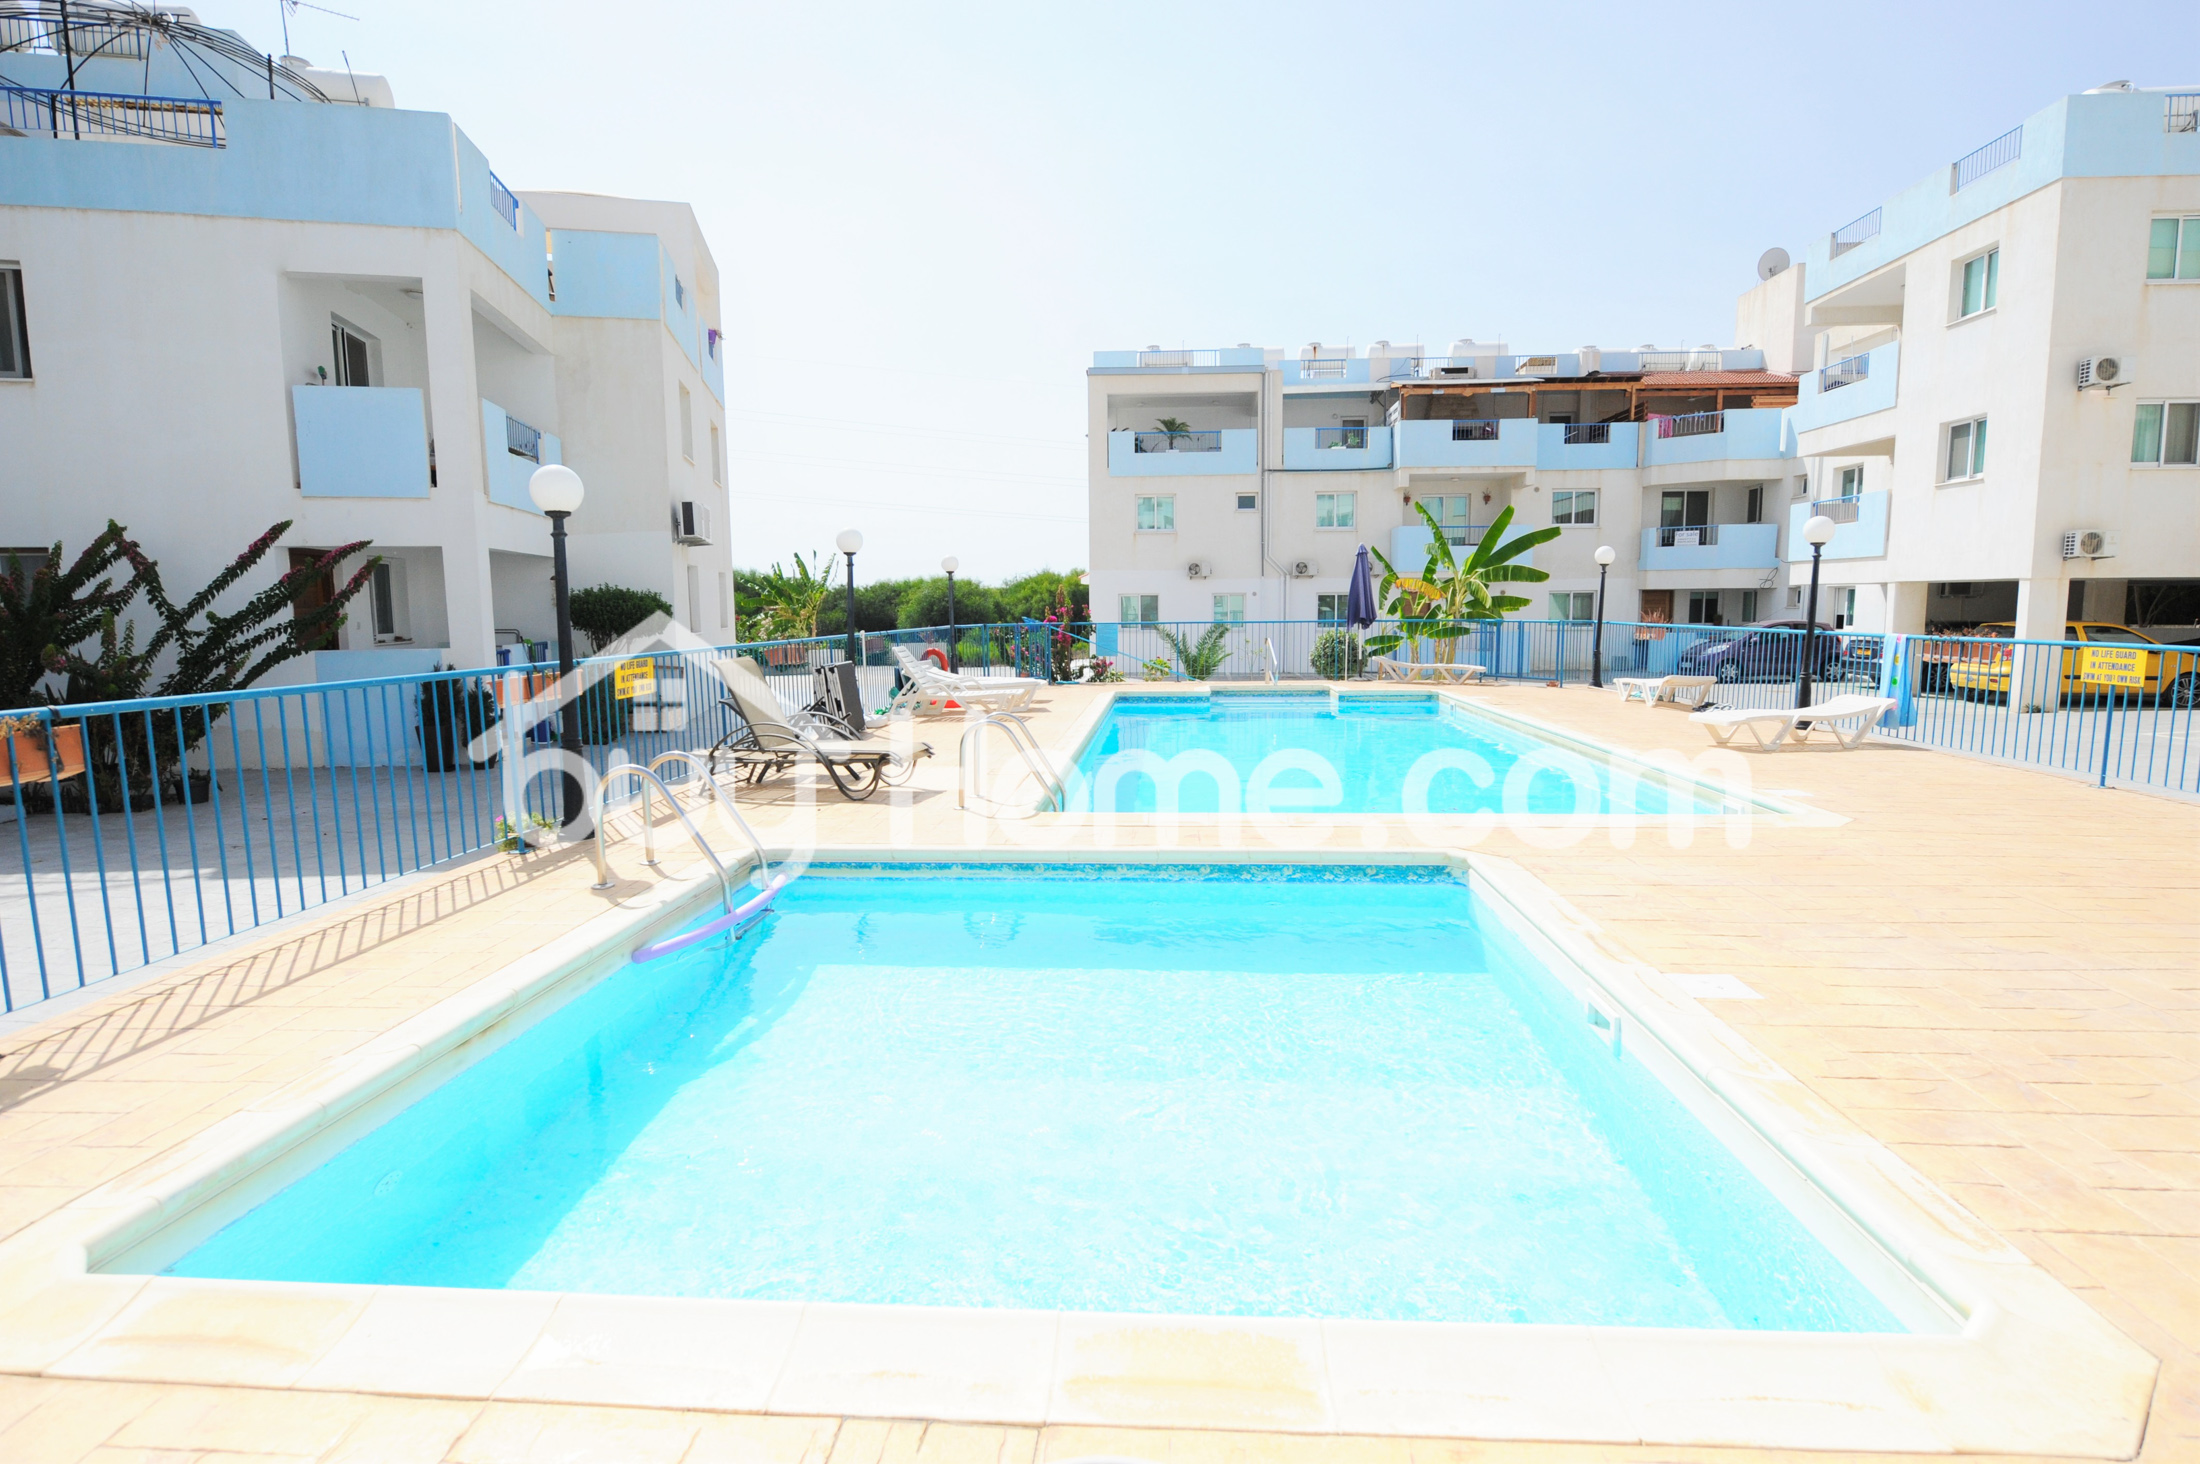 1 Bedroom Apartment Complex With A Pool | BuyHome